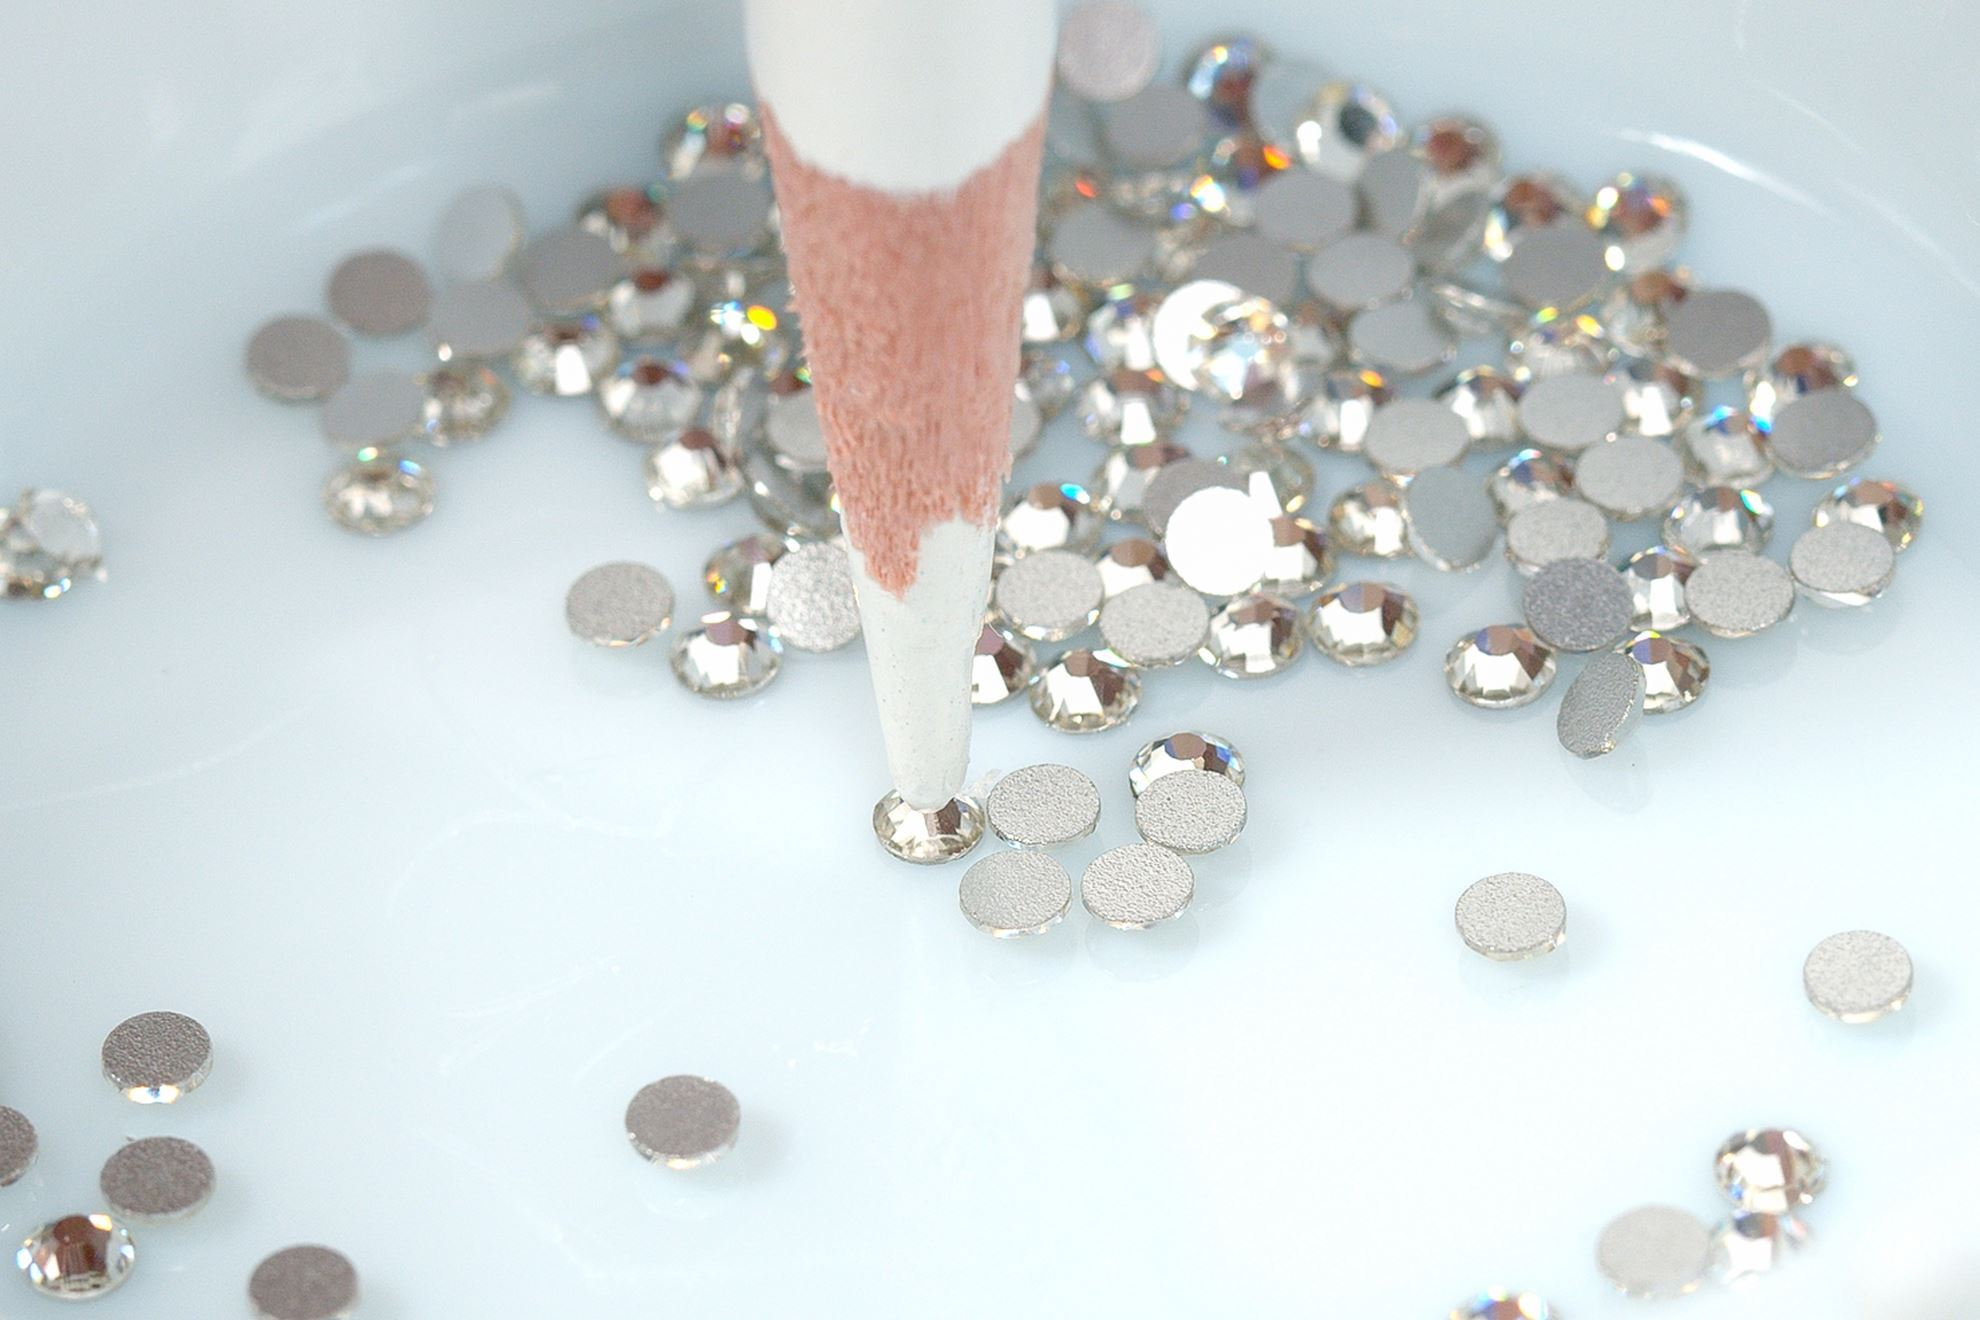 Use tip of colored pencil to grab rhinestones